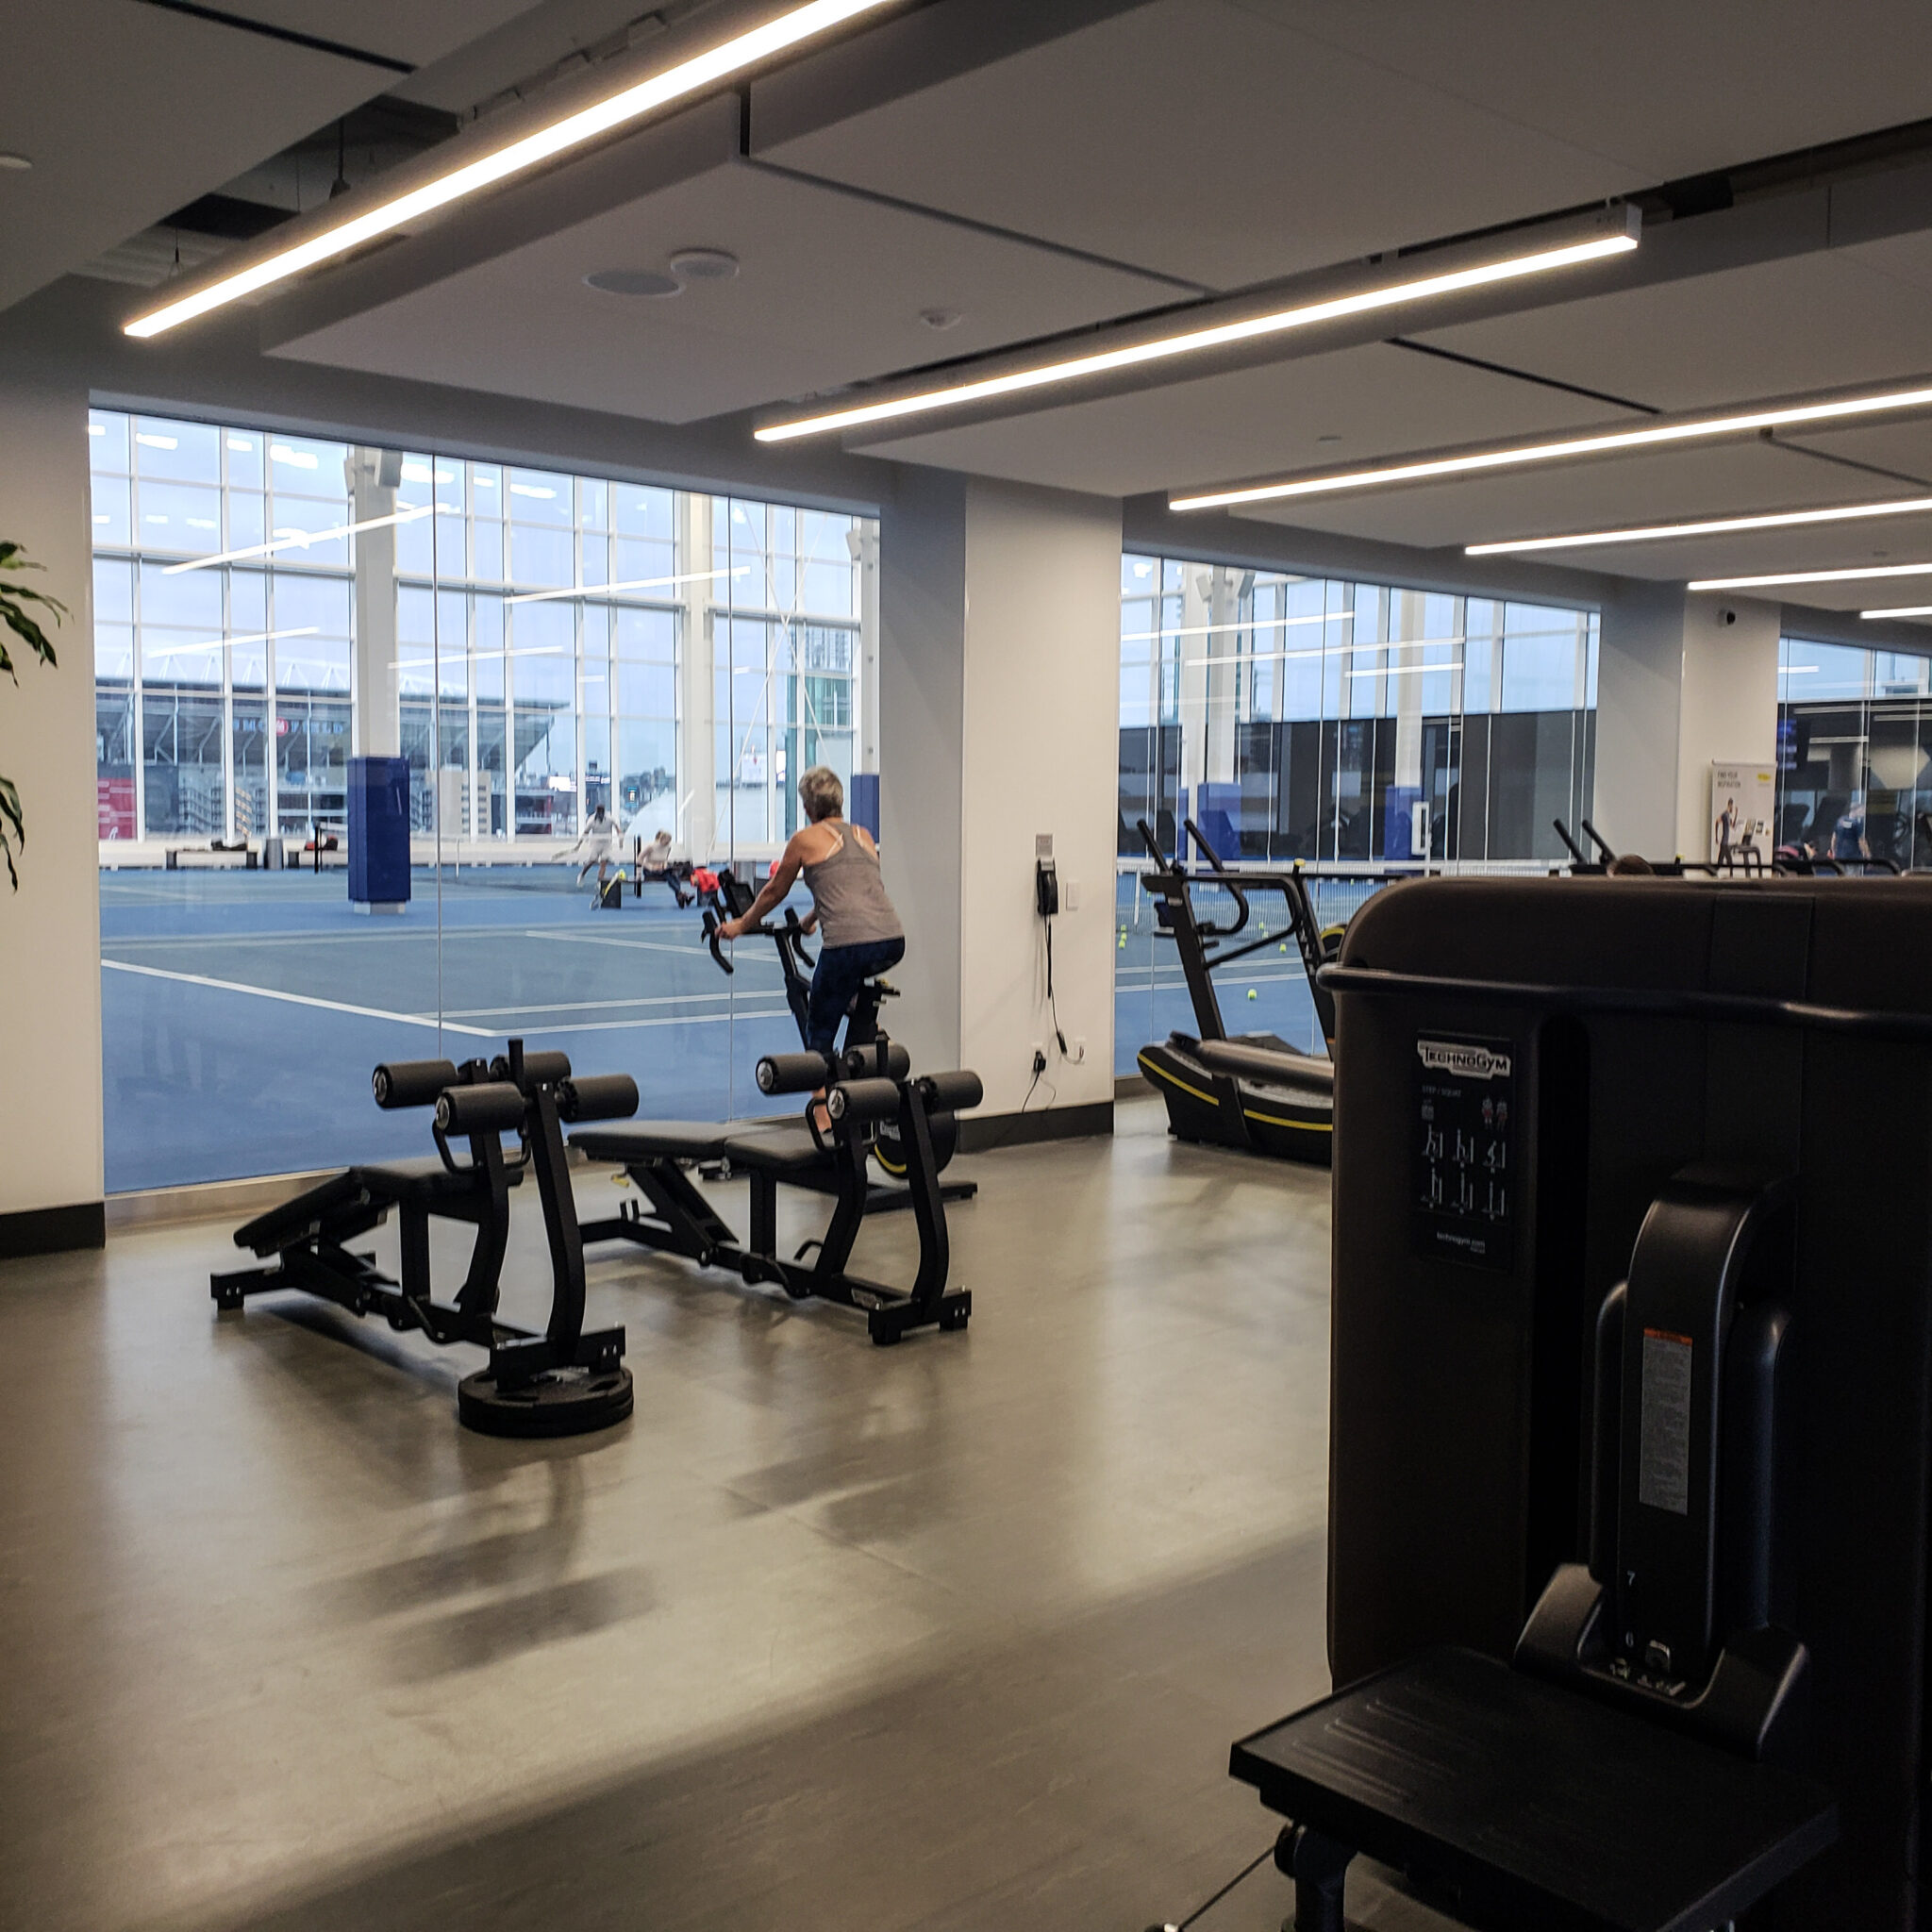 Hotel X Toronto - Luxury Resort - Ten X Ten - Fitness Facility